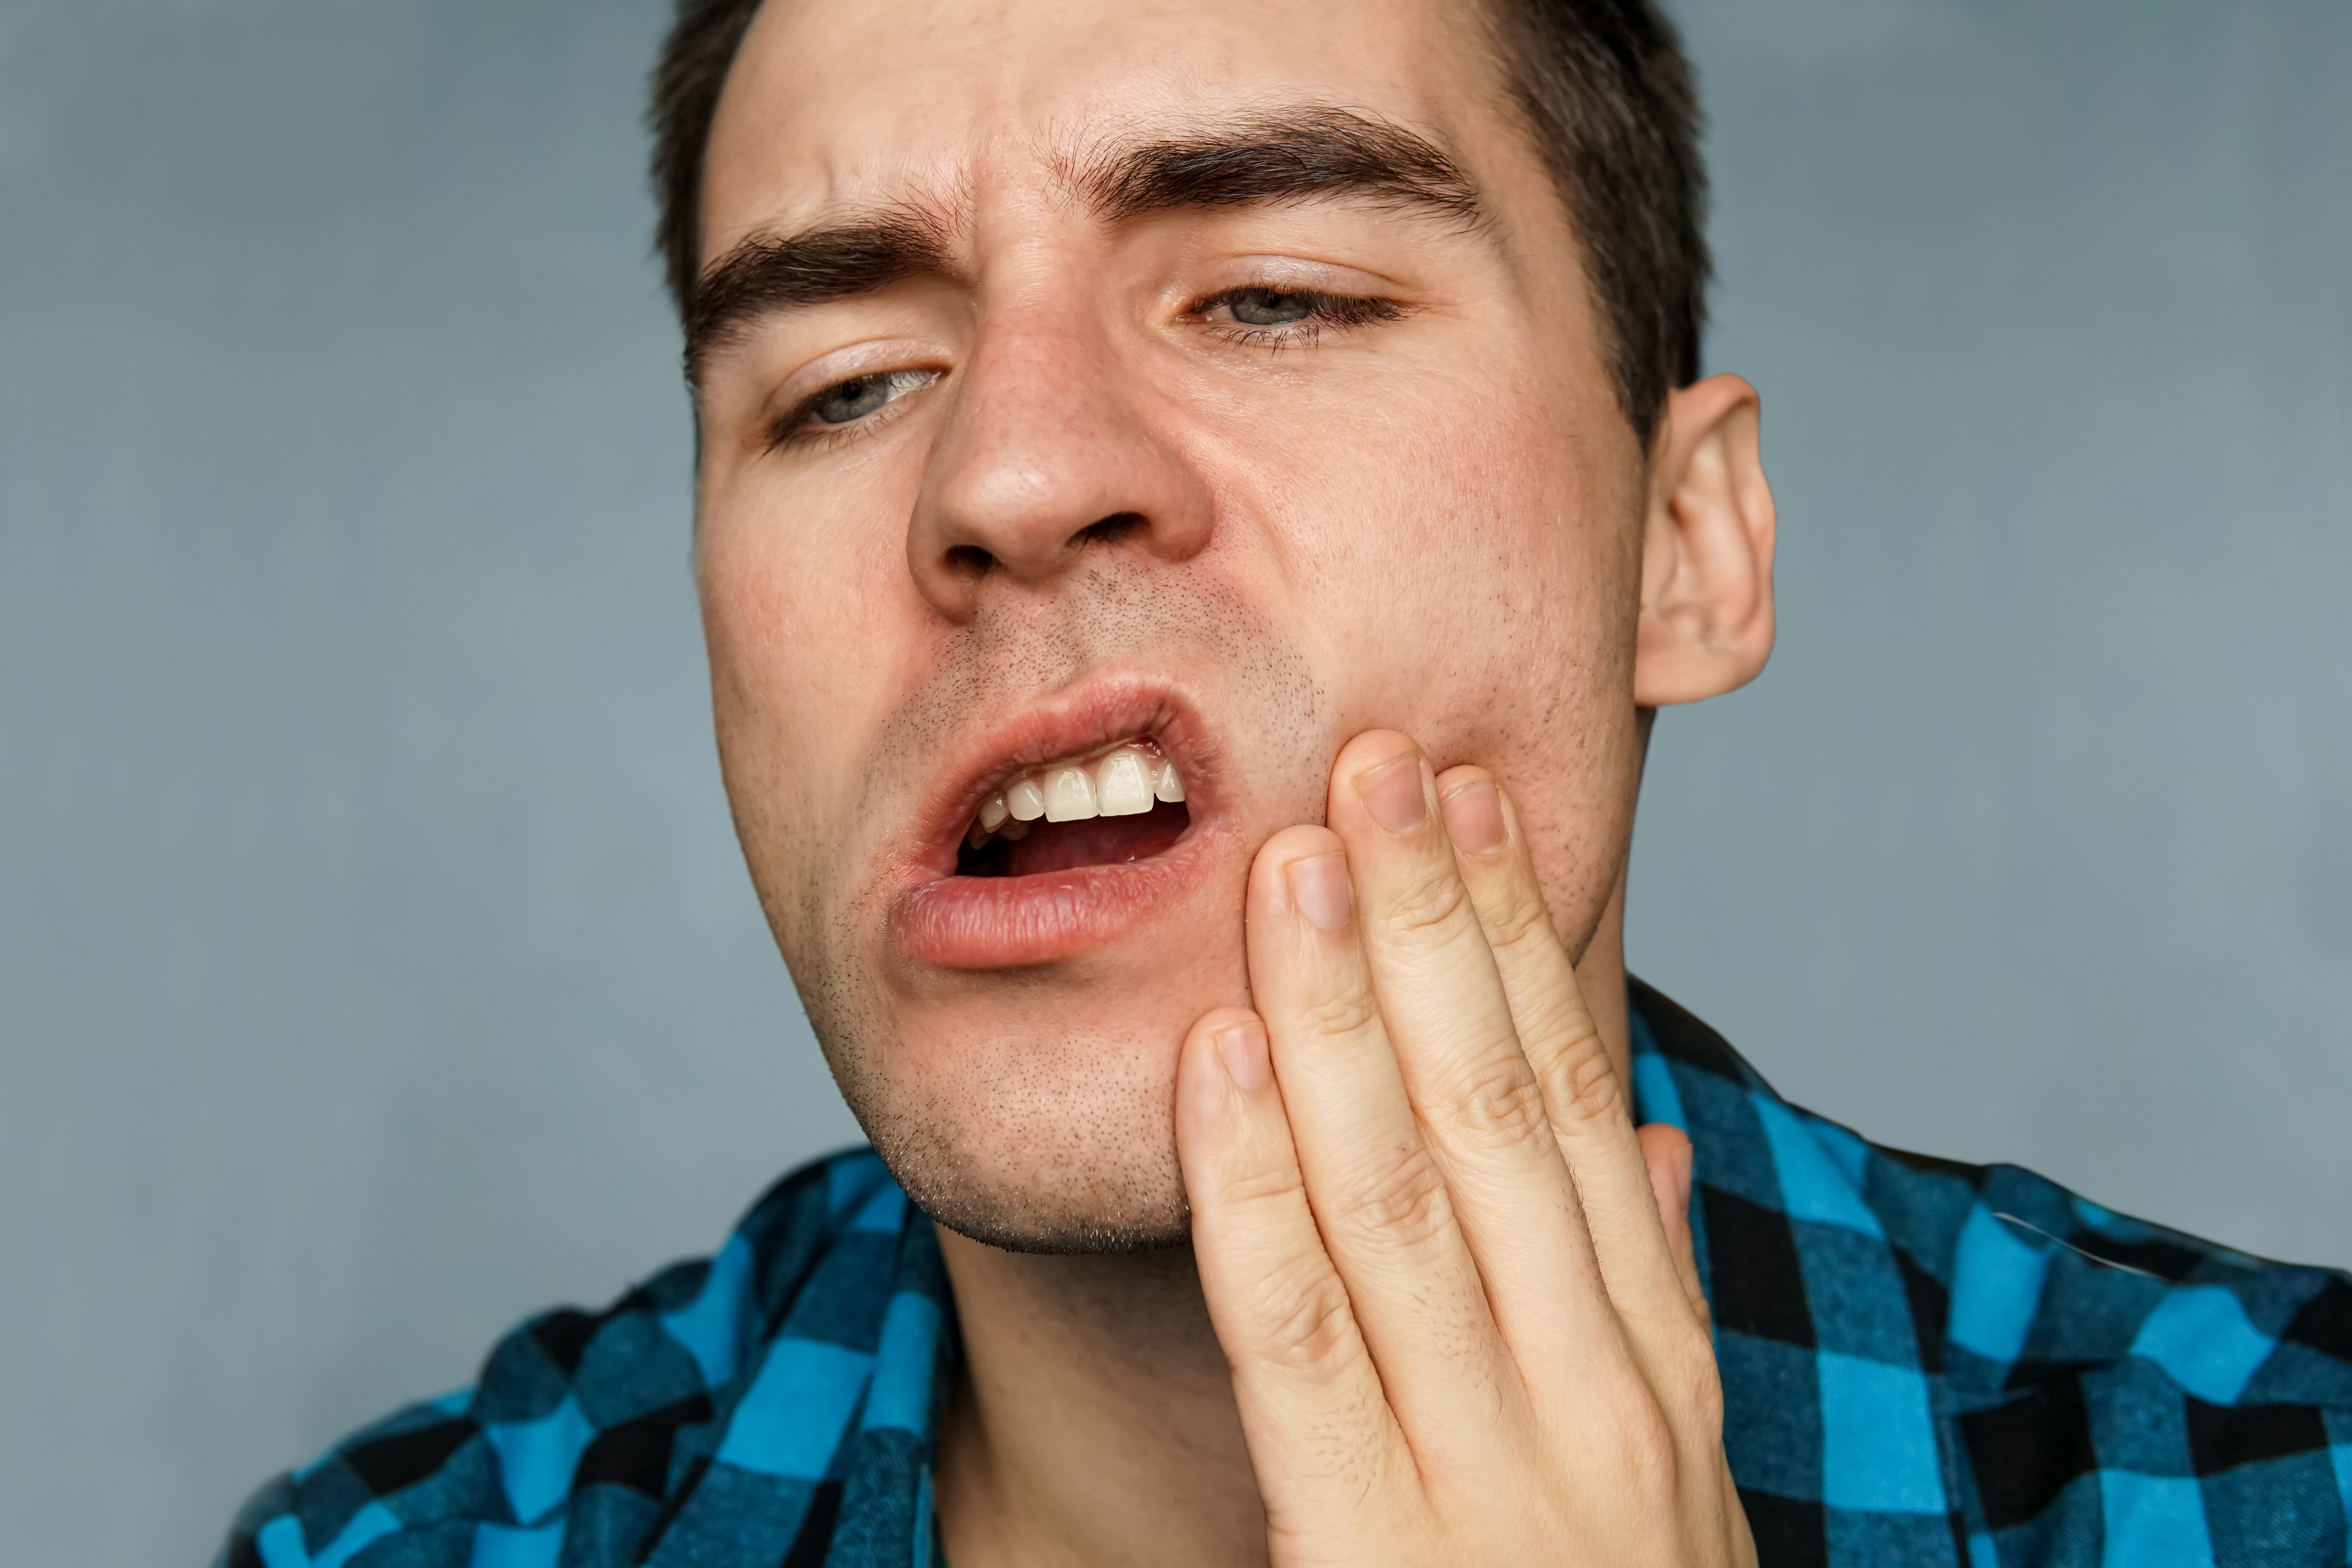 Jaw Pain from GERD or Acid Reflux or from Your Heart?